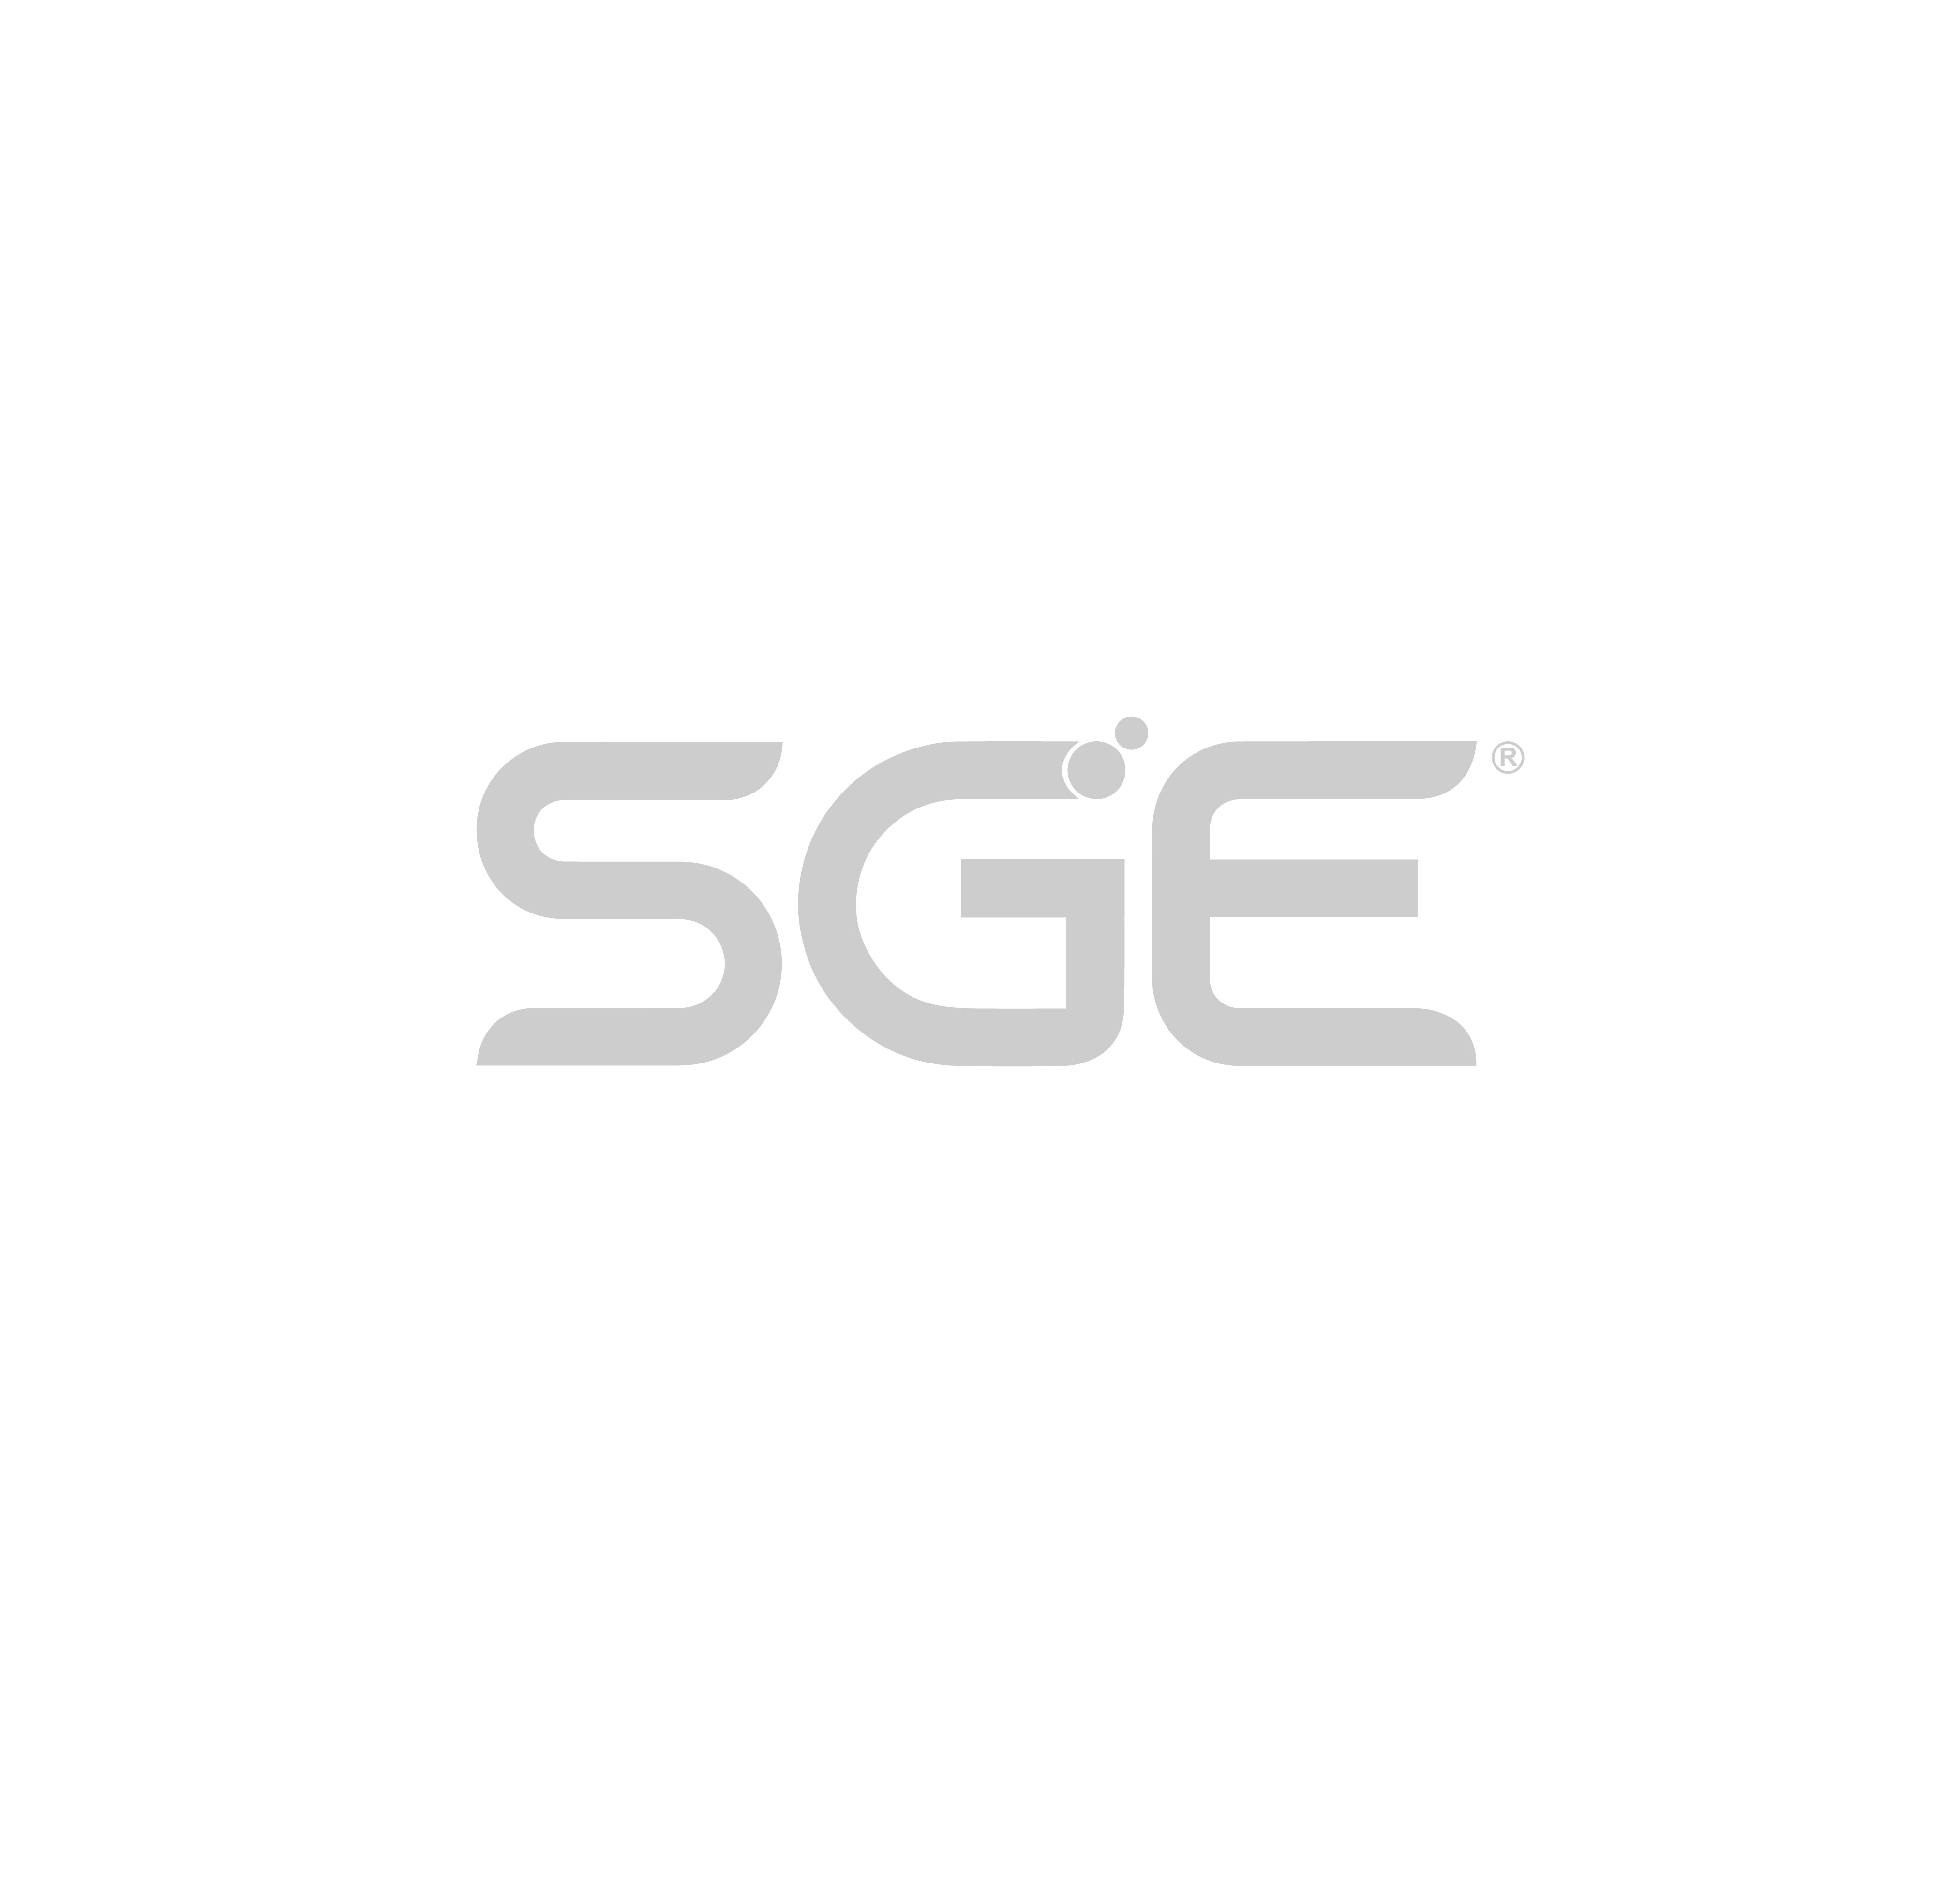 Led Smd Para Backlight Tv Pantalla Led 7.0Mm*3.0Mm 1W 6V